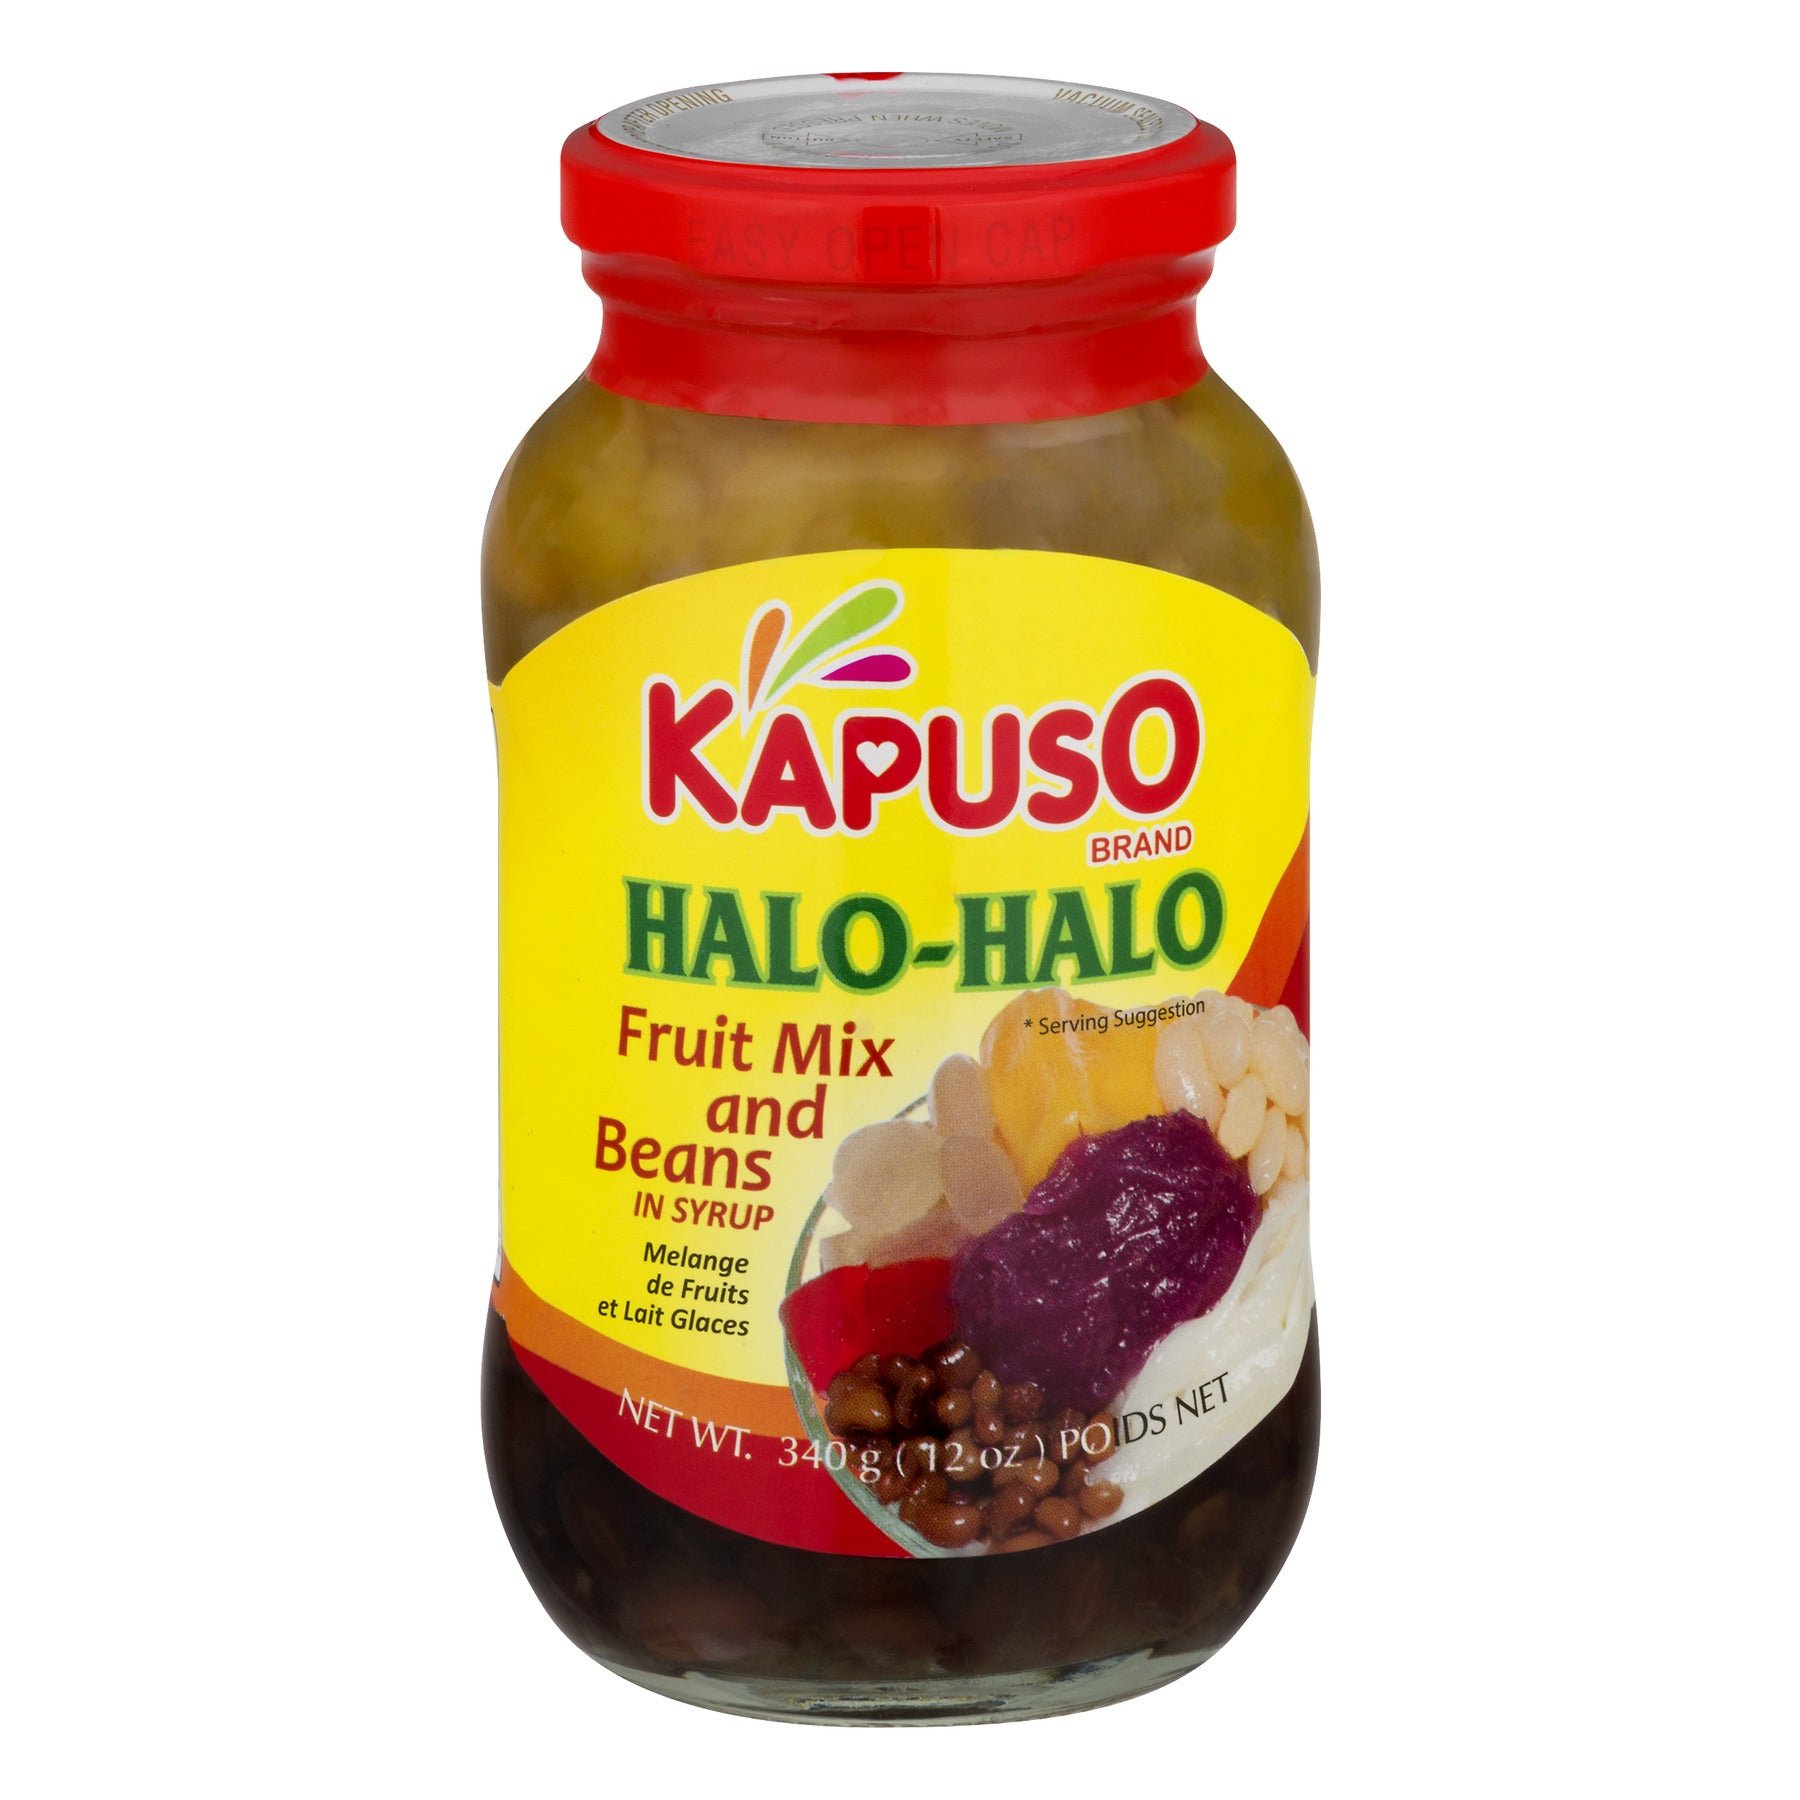 Kapuso - Halo-halo Fruit Mix & Beans 12 OZ